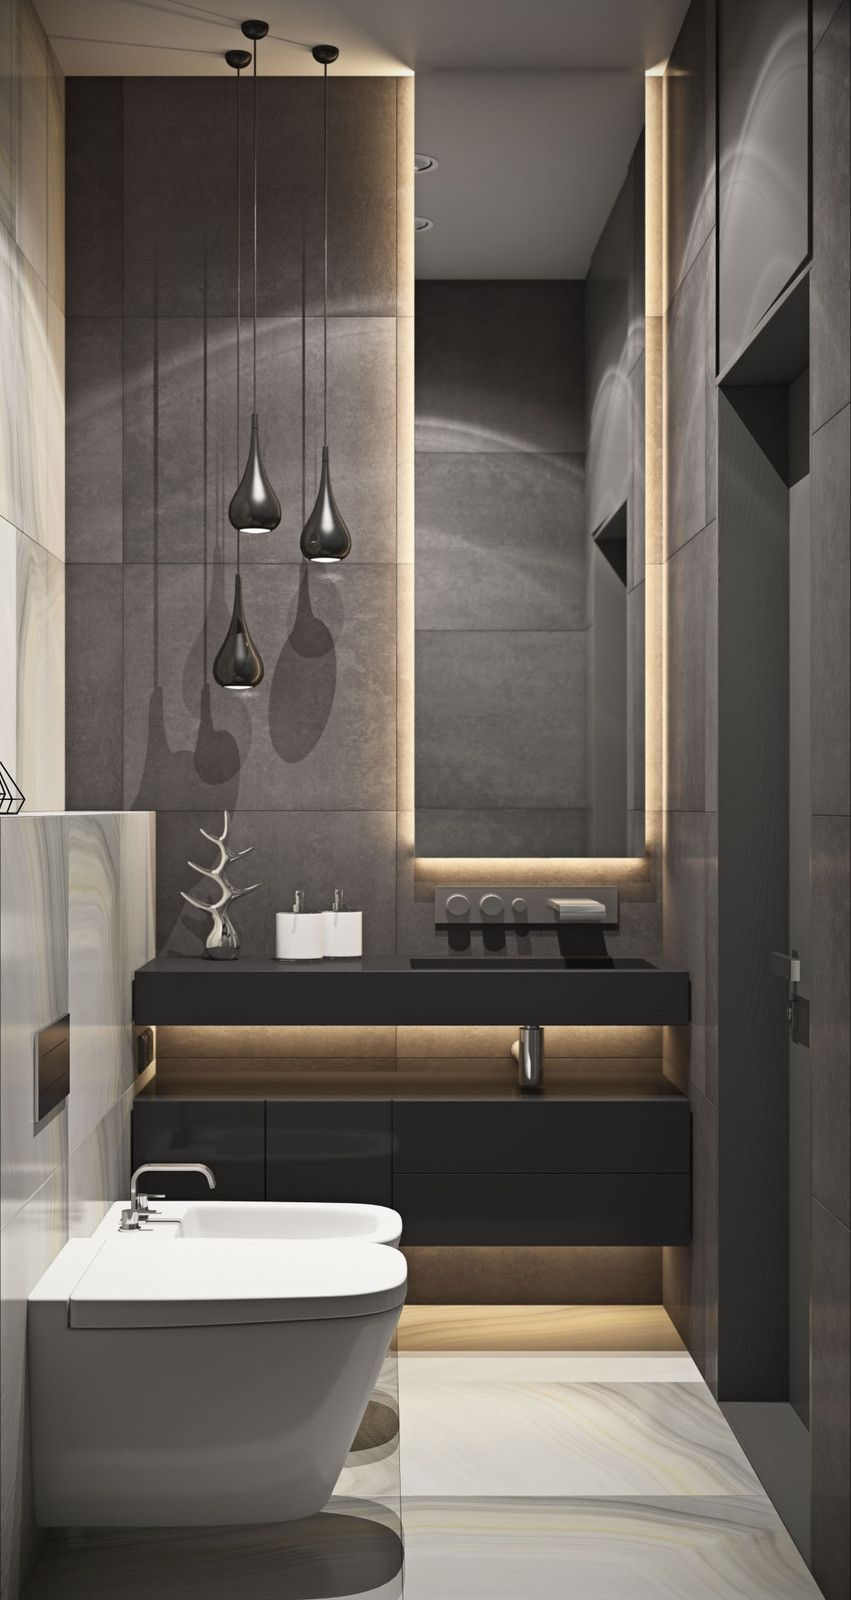 Luxurious Bathroom Space Love The Hanging Light Fixtures And Gray